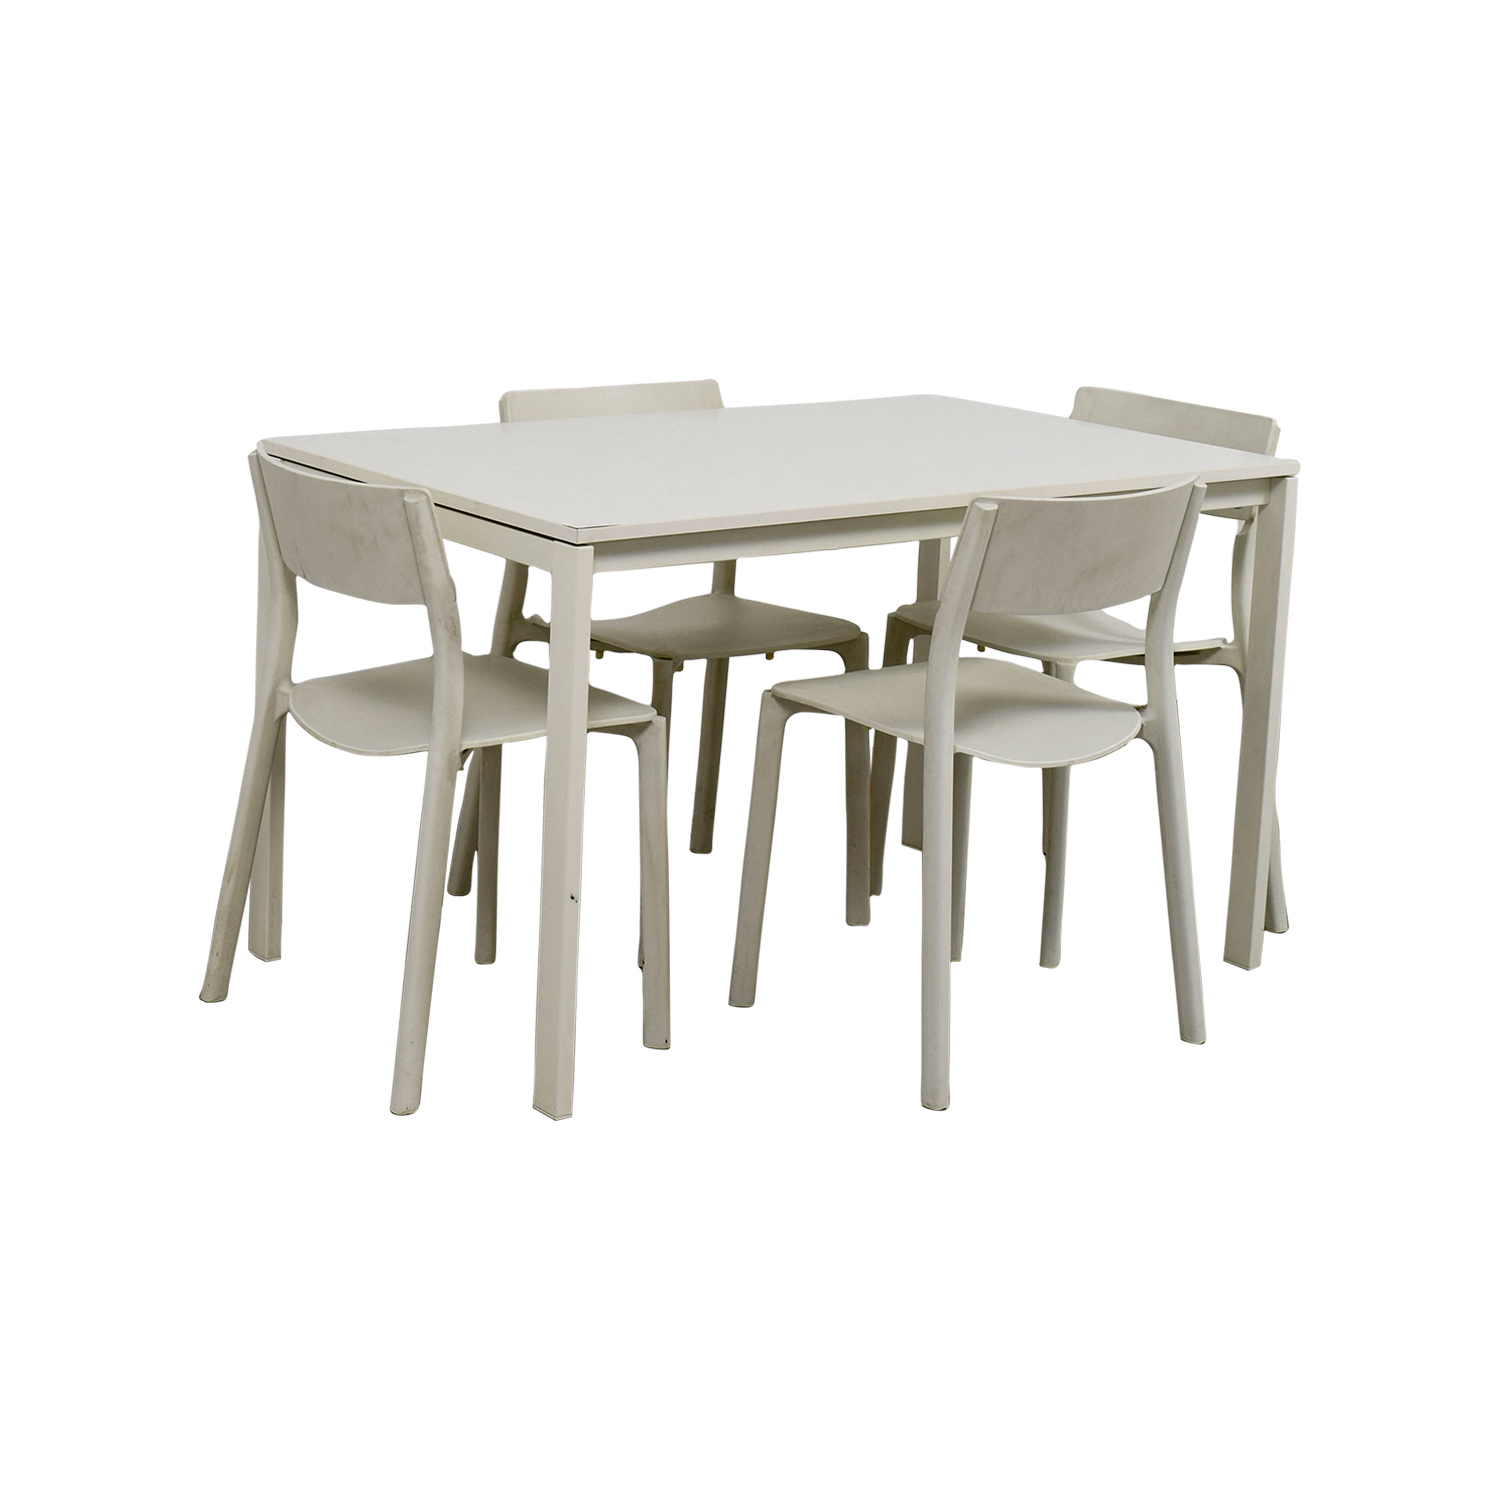 White Dining Table Ikea: IKEA IKEA White Kitchen Table And Chairs / Tables